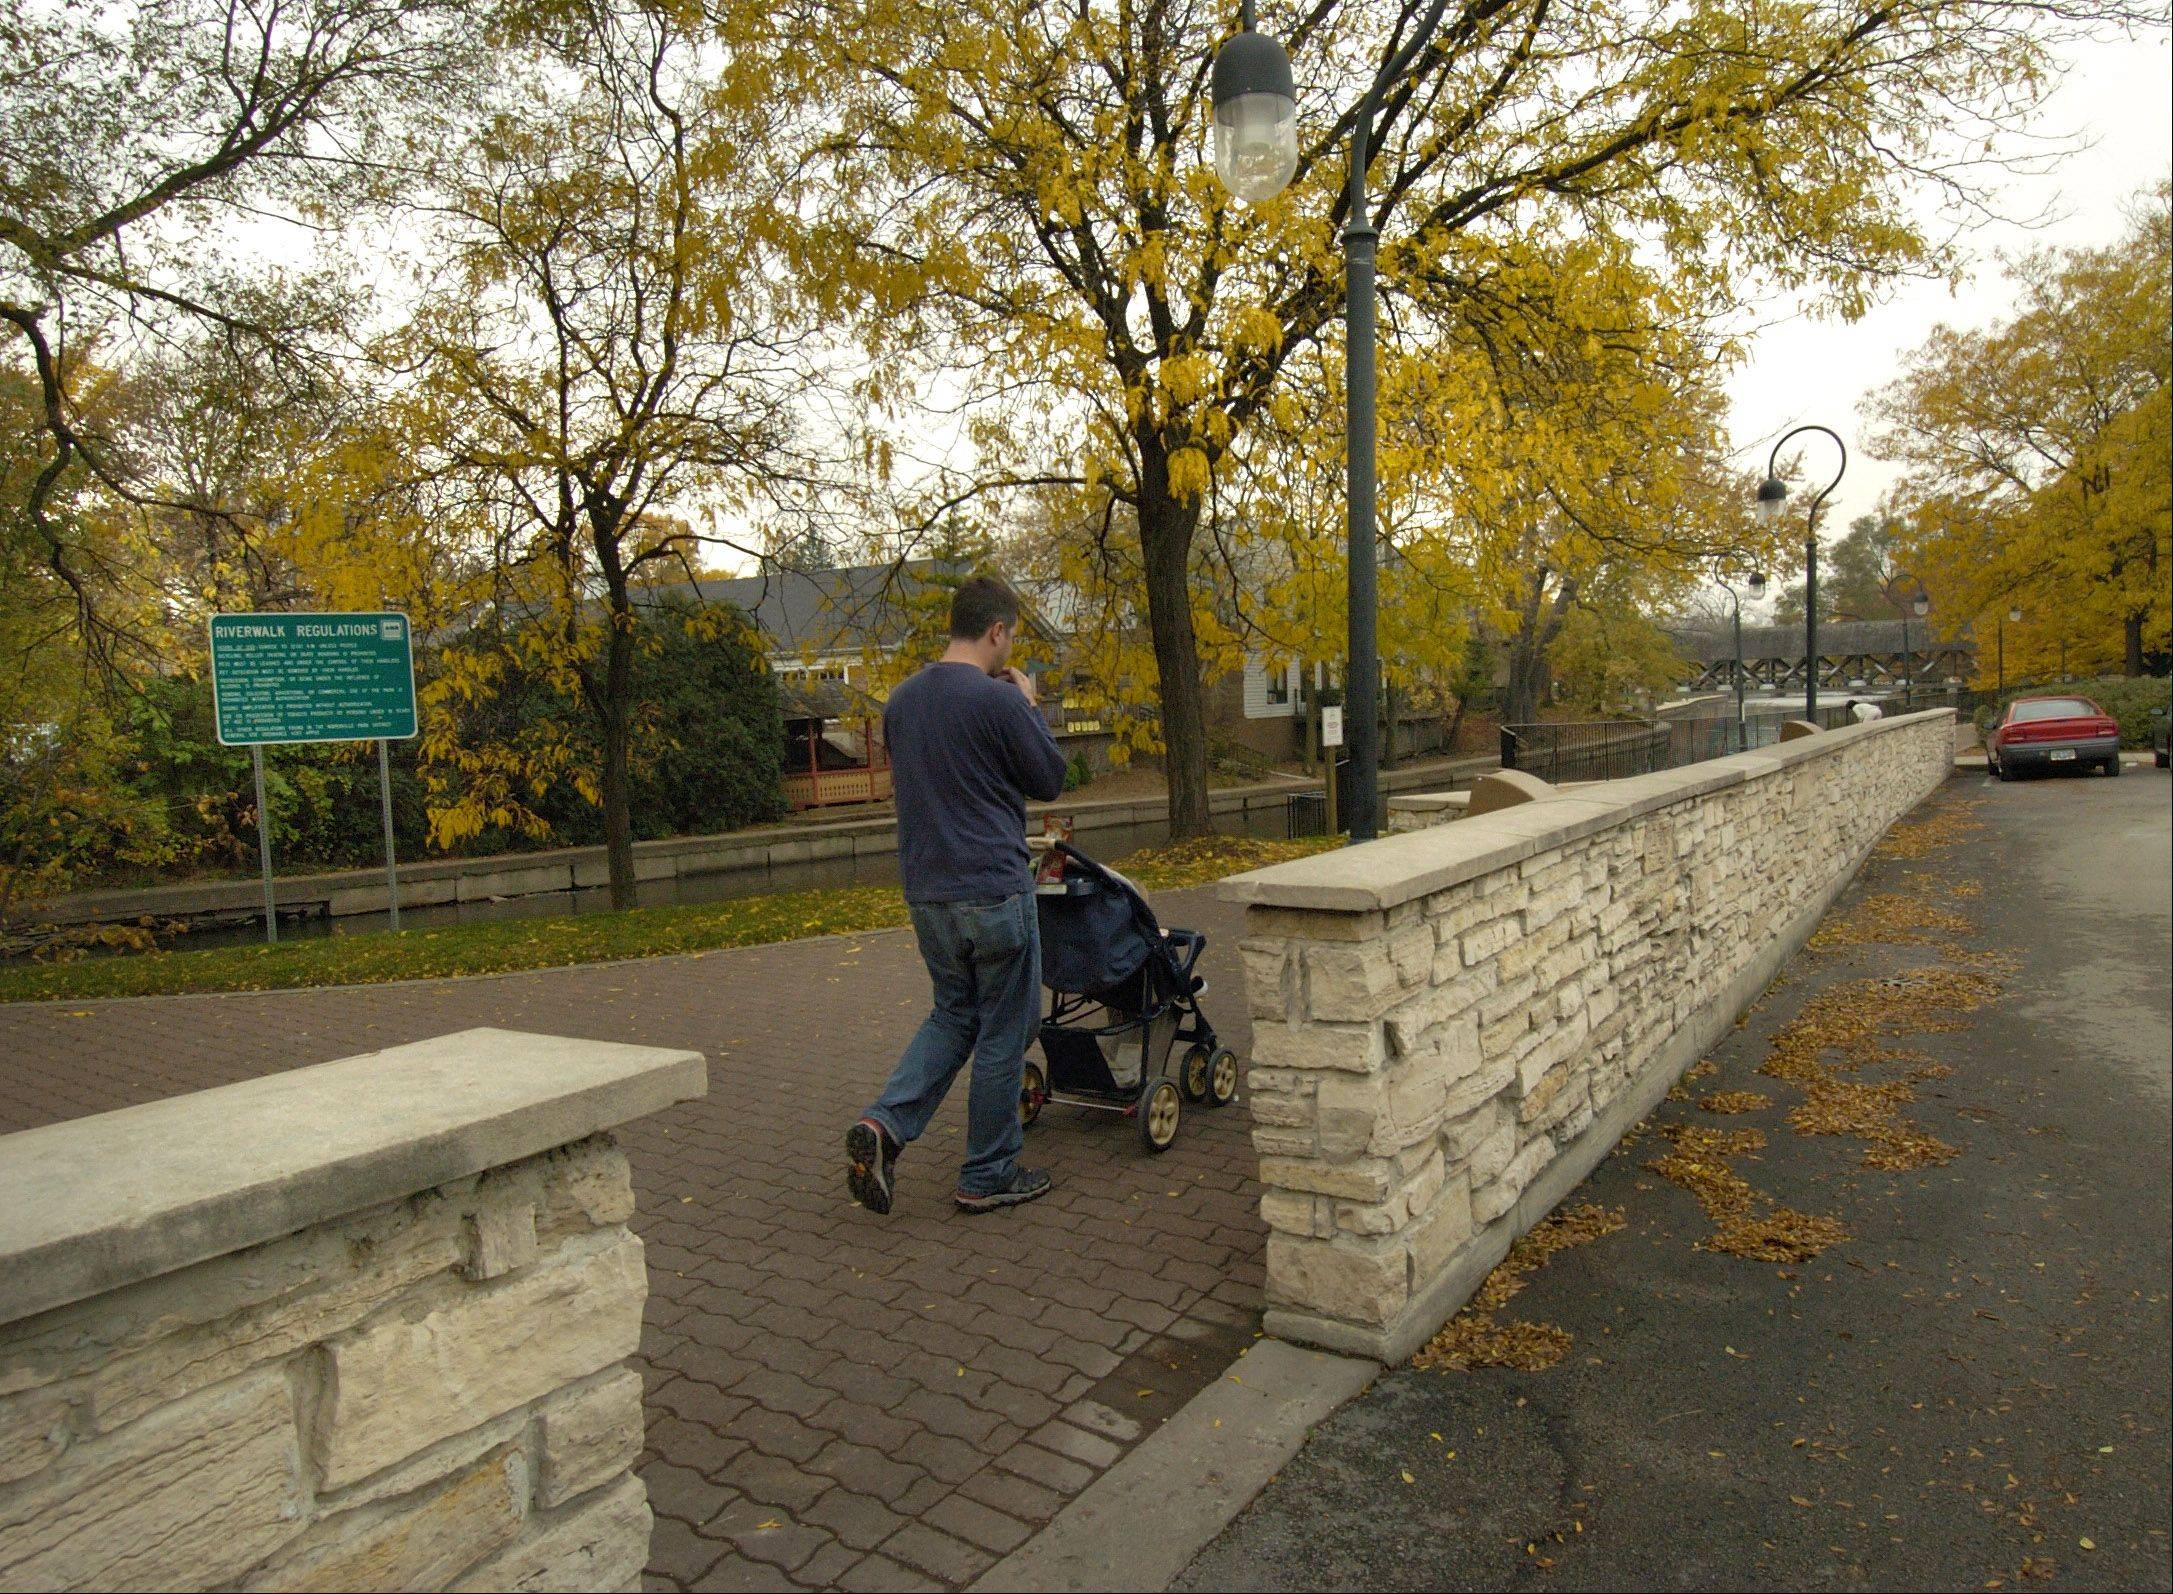 Naperville named top U.S. city for early retirees